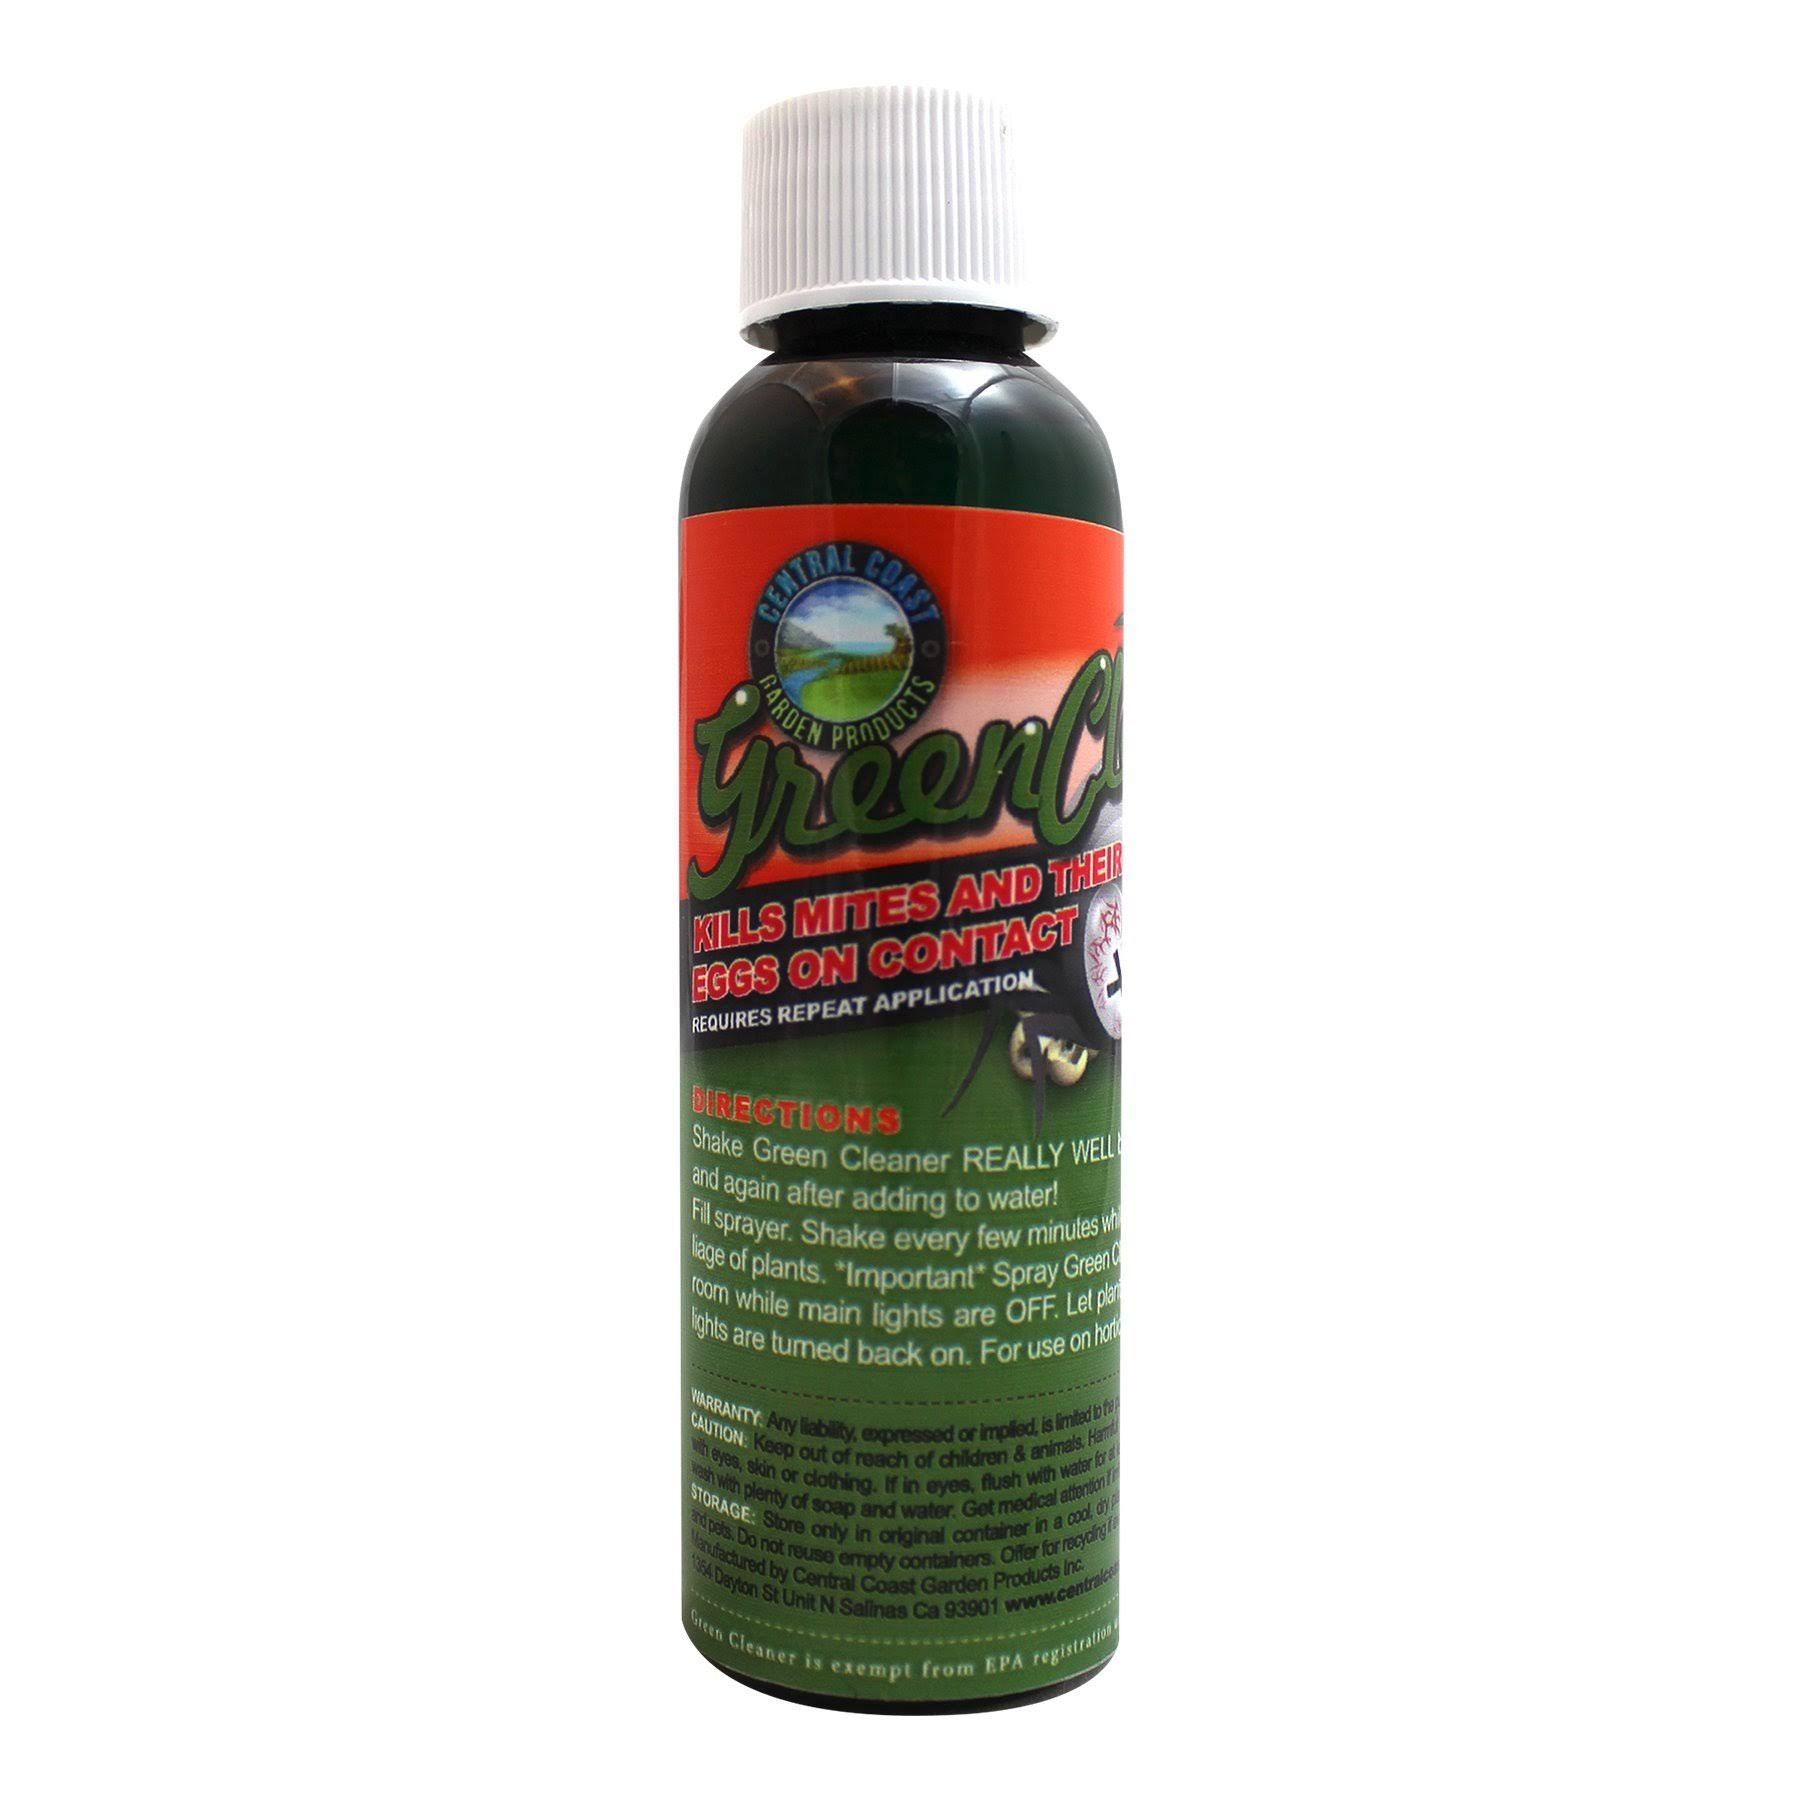 Green Cleaner 749800 Home Pest Control Sprayer - 2oz